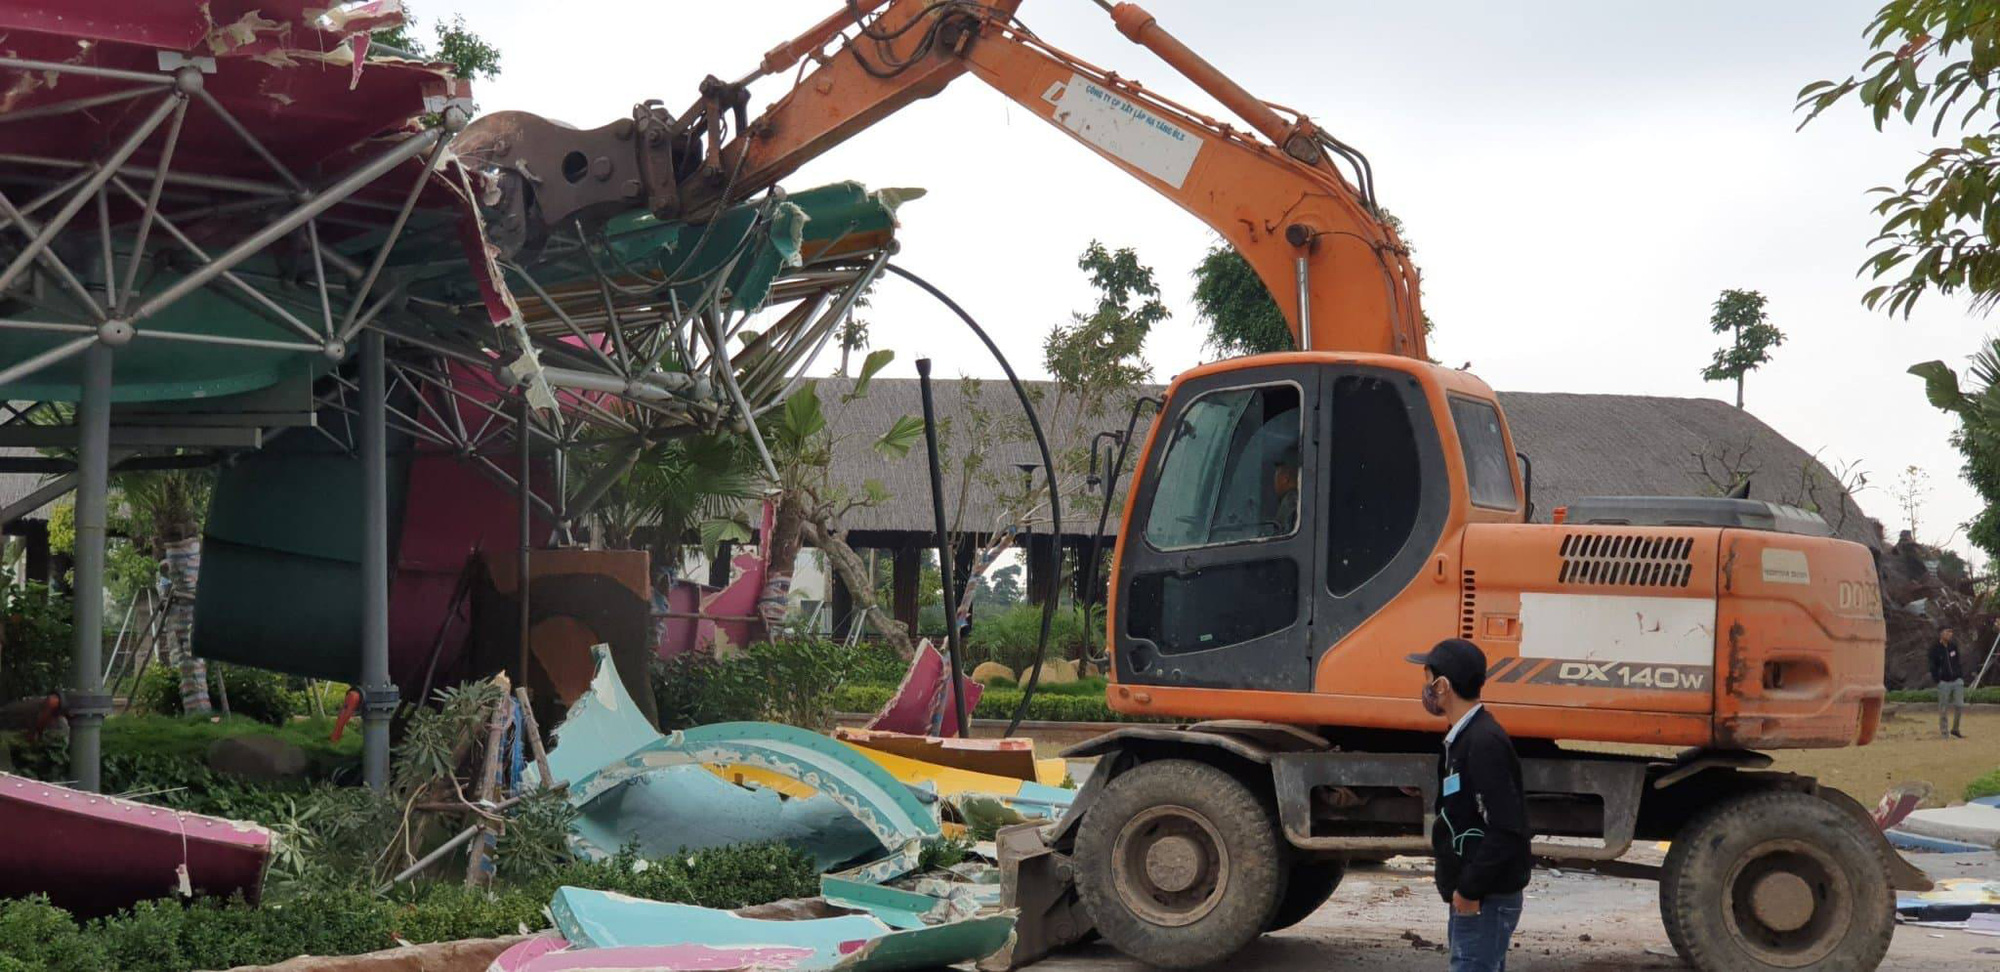 Competent authorities pull down Thanh Ha Water Park in Ha Dong District, Hanoi on January 15, 2020. Photo: B.N / Tuoi Tre